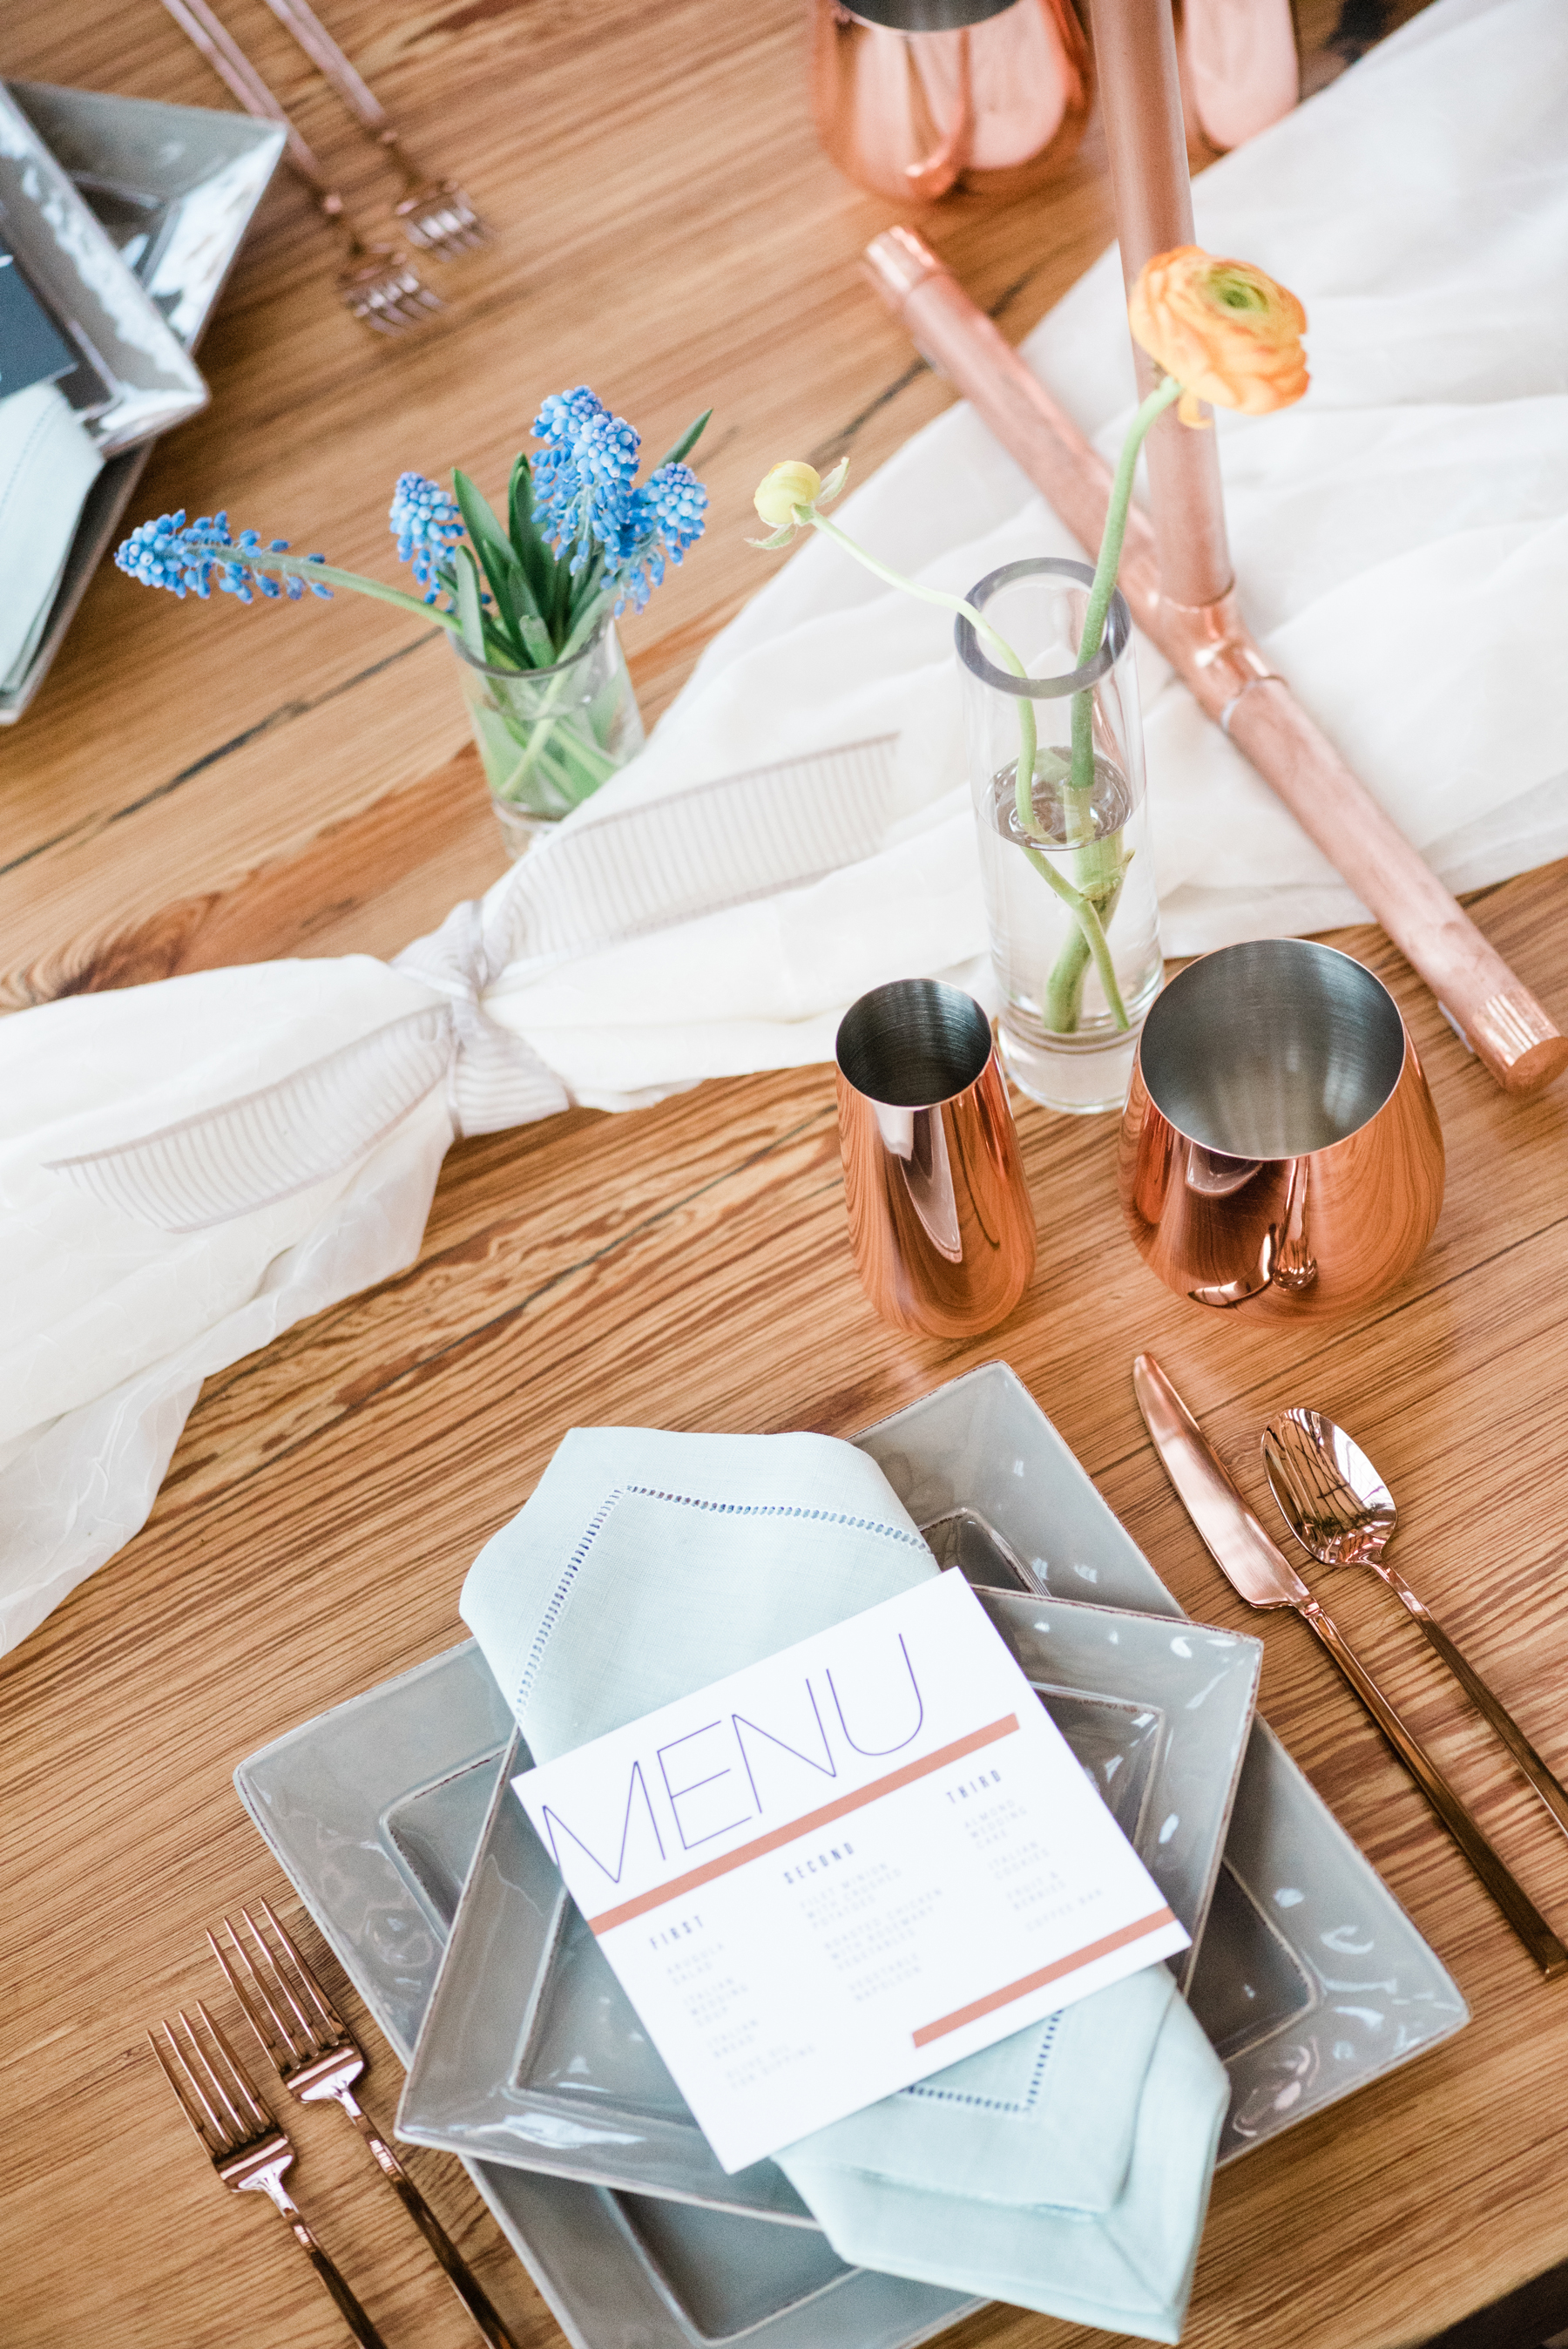 industrial_chic_copper_wedding_table_decor_mass_moca_hybl_fannin_design-3_1800.jpg